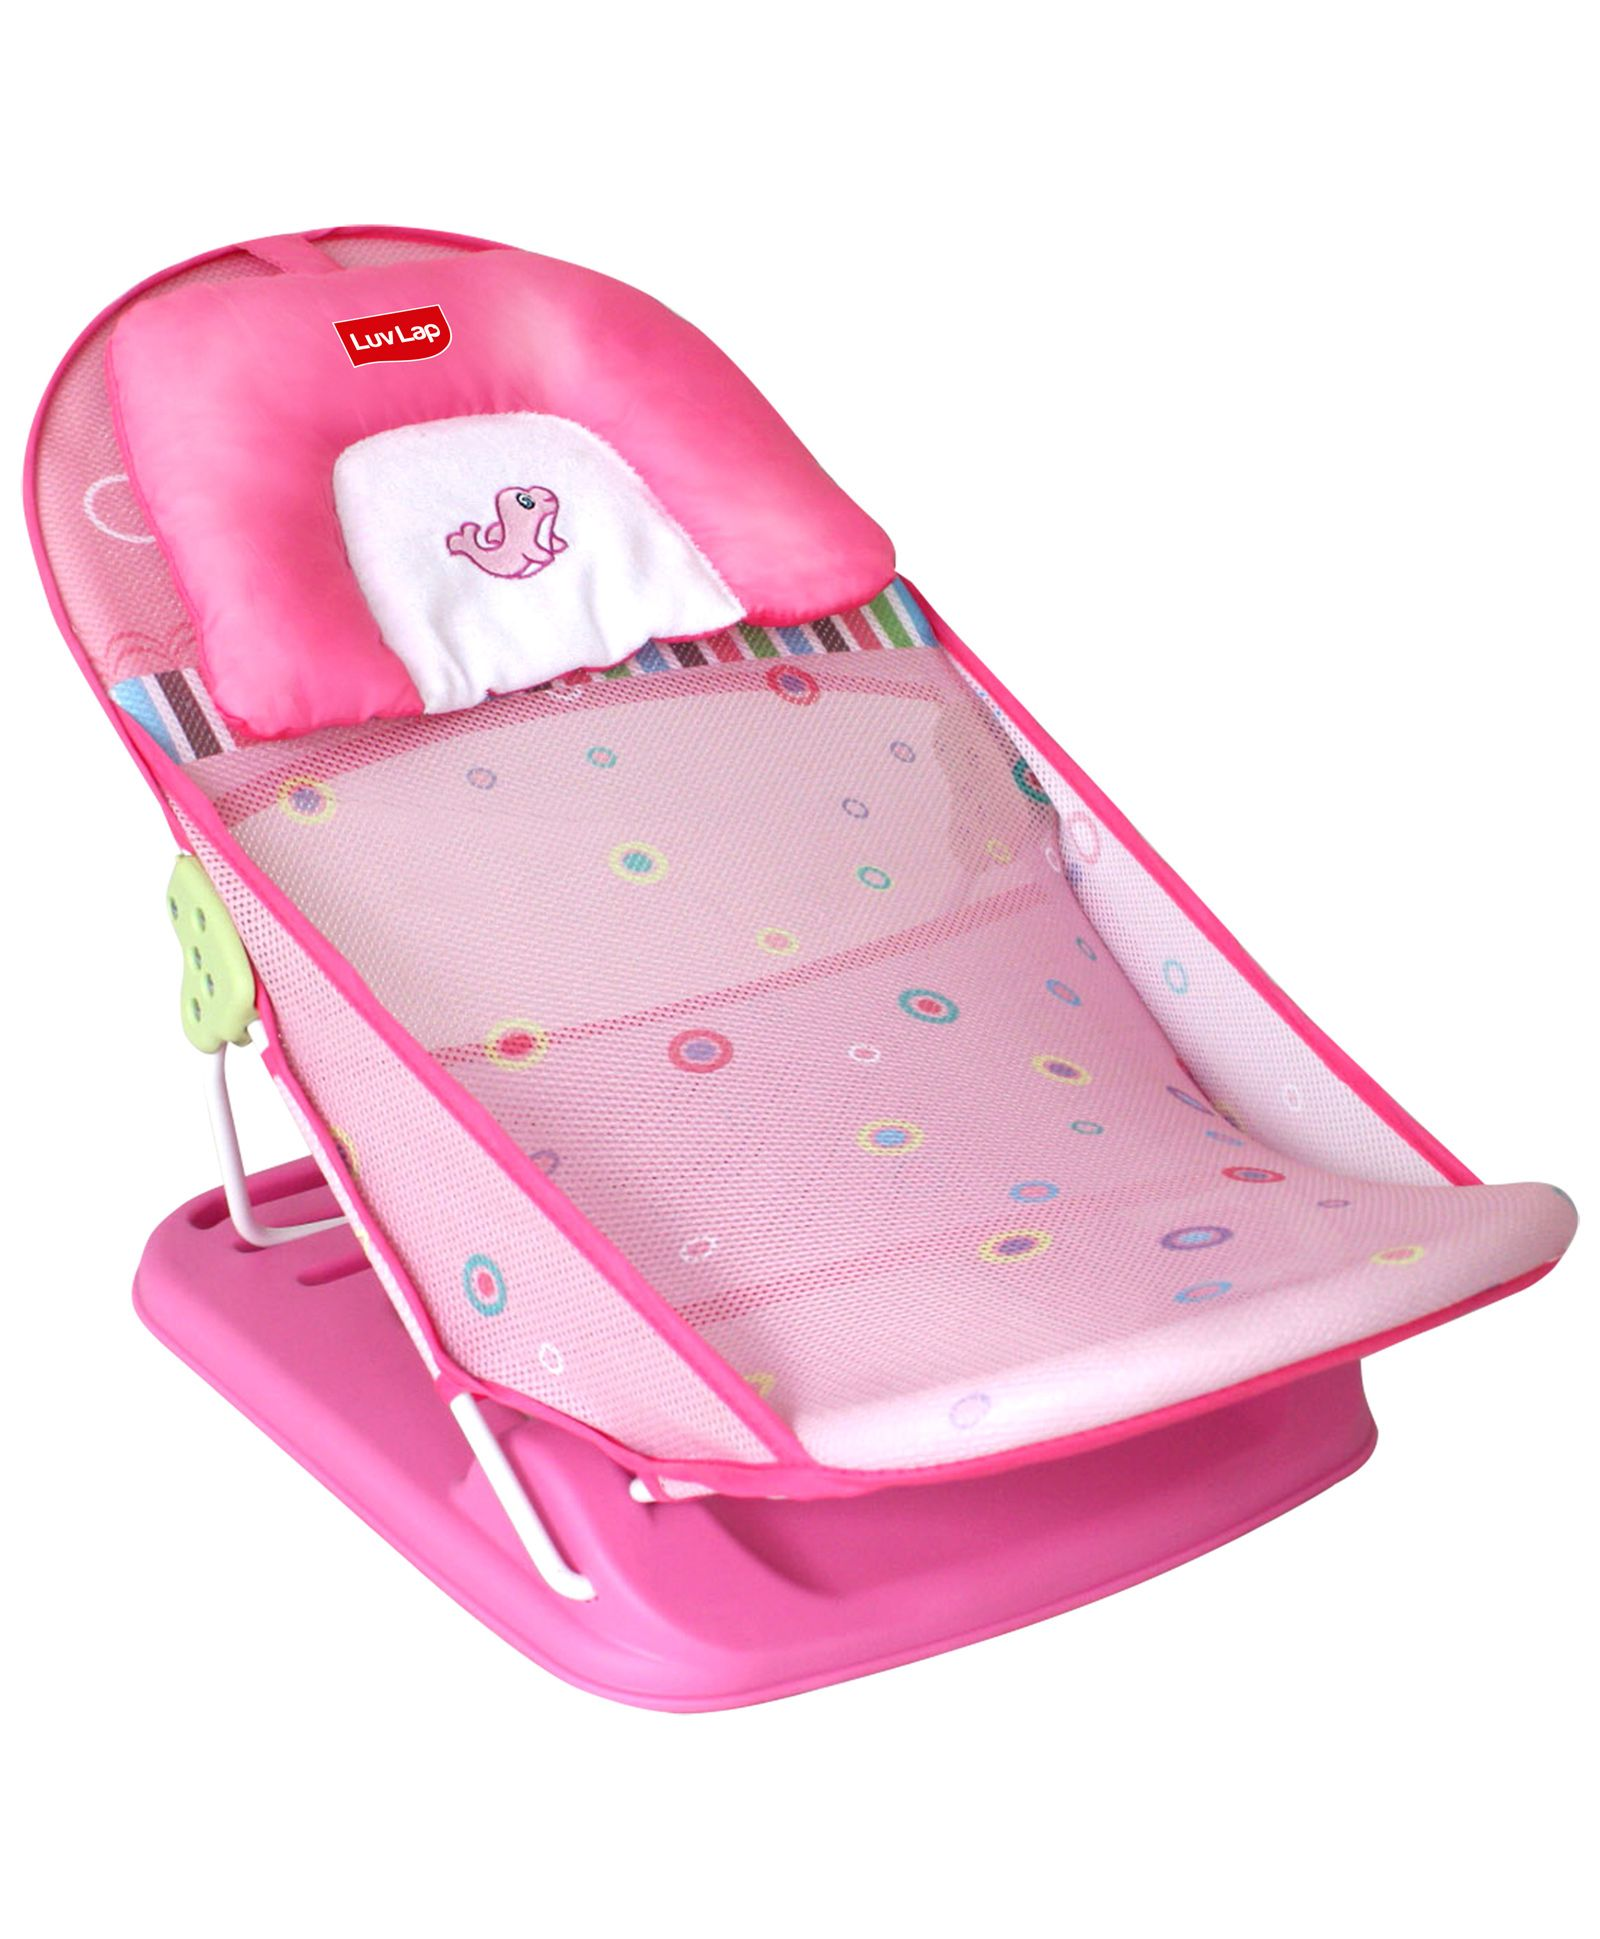 Luv Lap Baby Bather Fish Print Pink - 18171